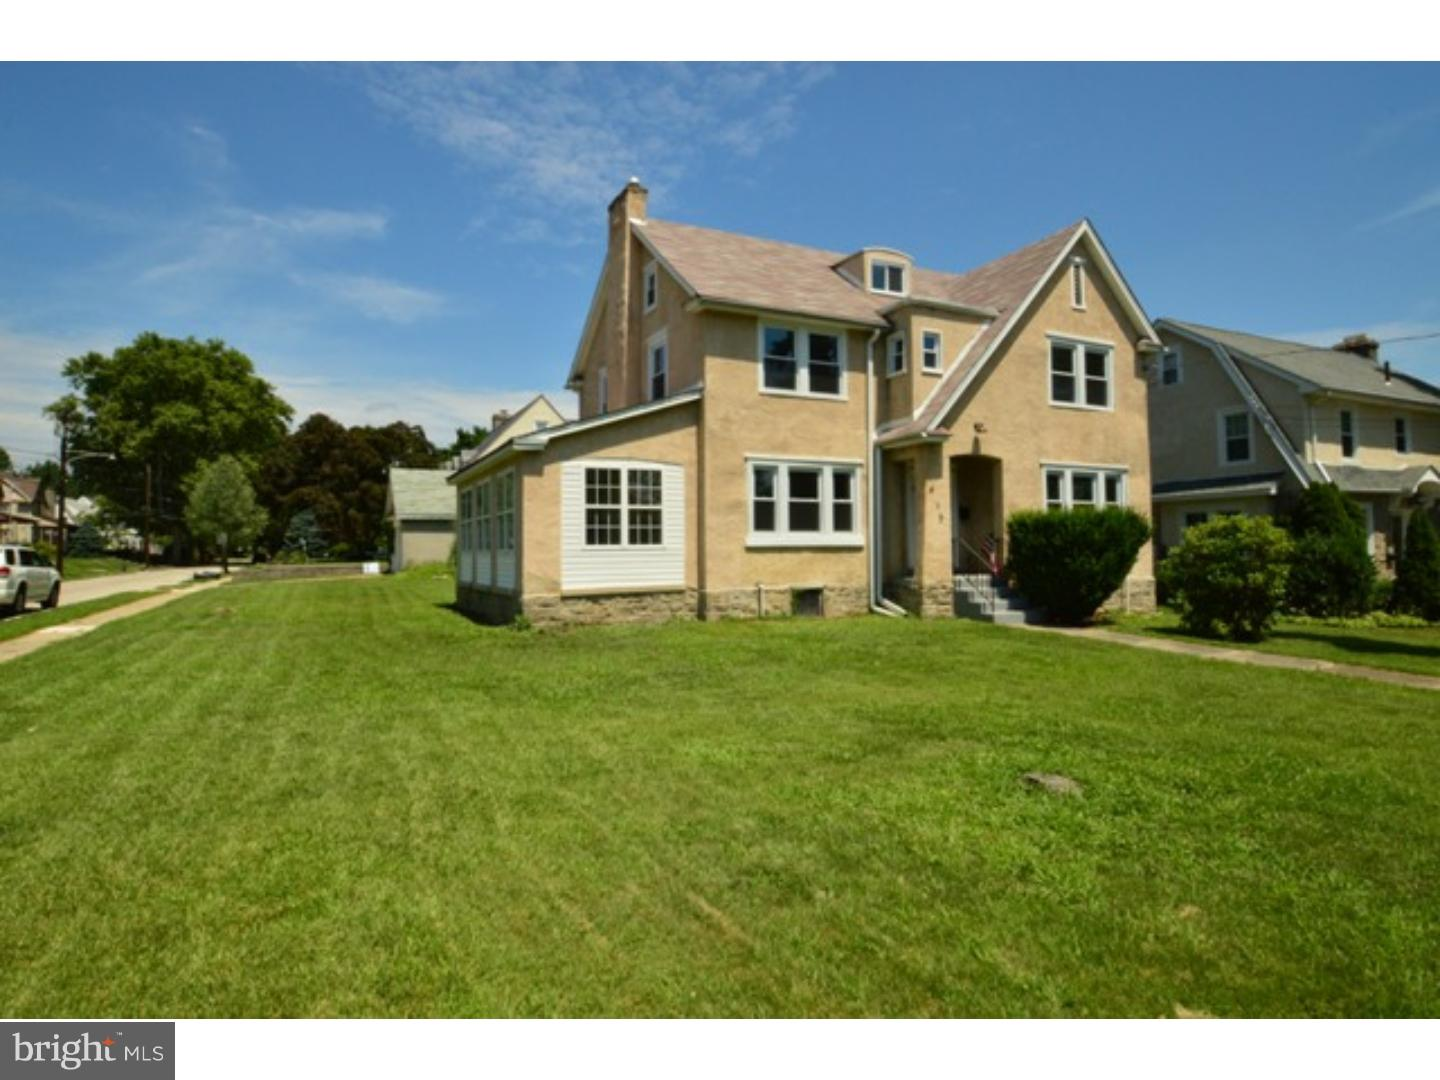 4115 State Road Drexel Hill, PA 19026